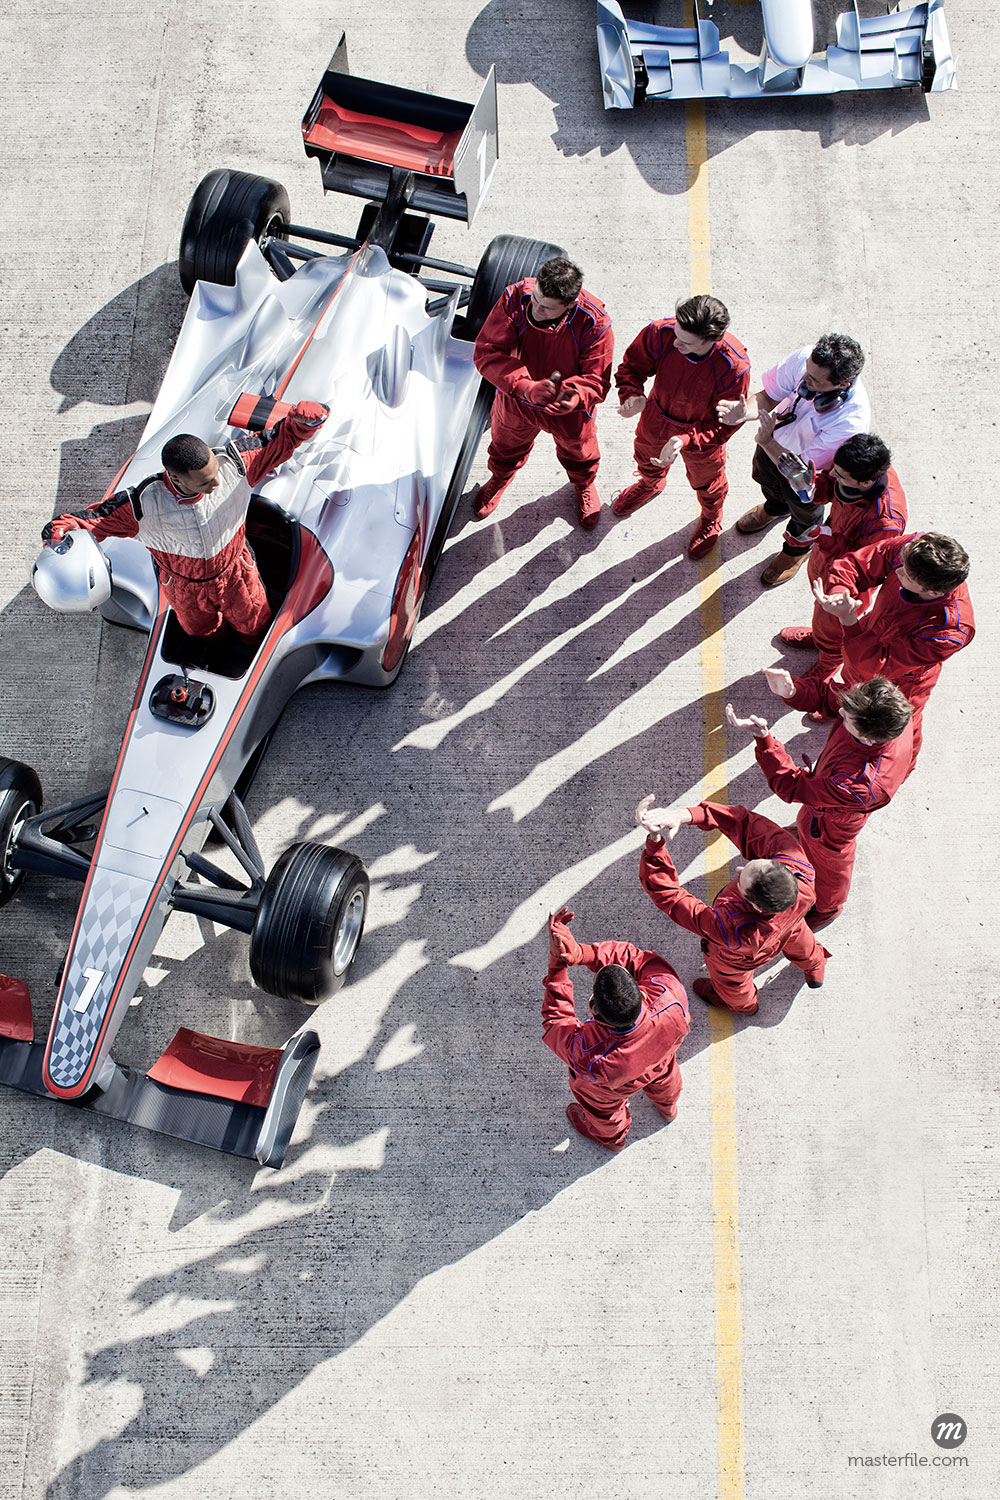 Racing team surrounding driver and caron track  © Caia Image / Masterfile